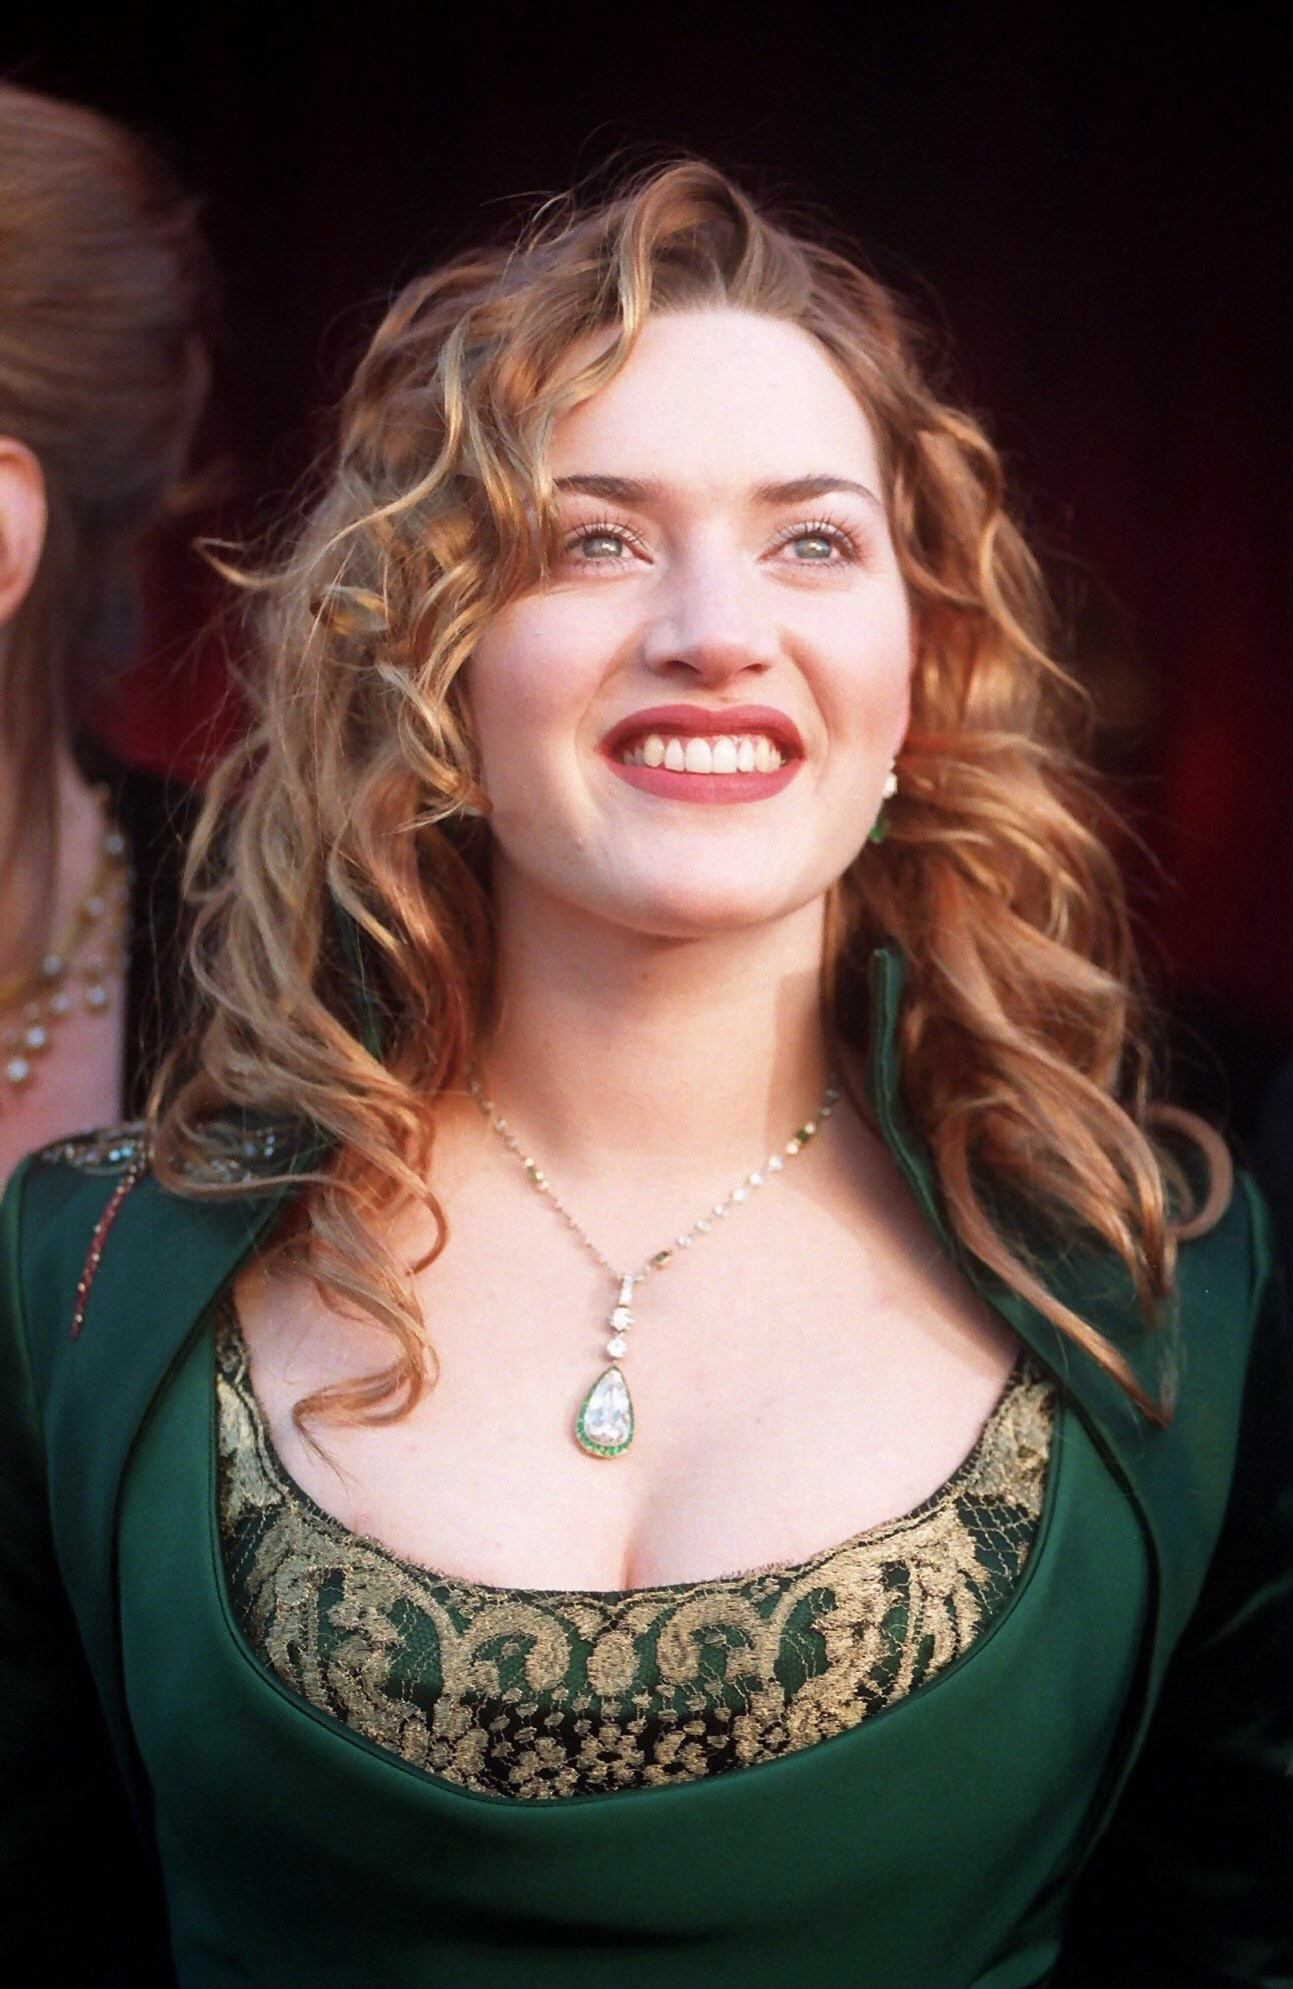 Which Colour Hair Do You Like The Mostkate Winslet Movies Fanpop